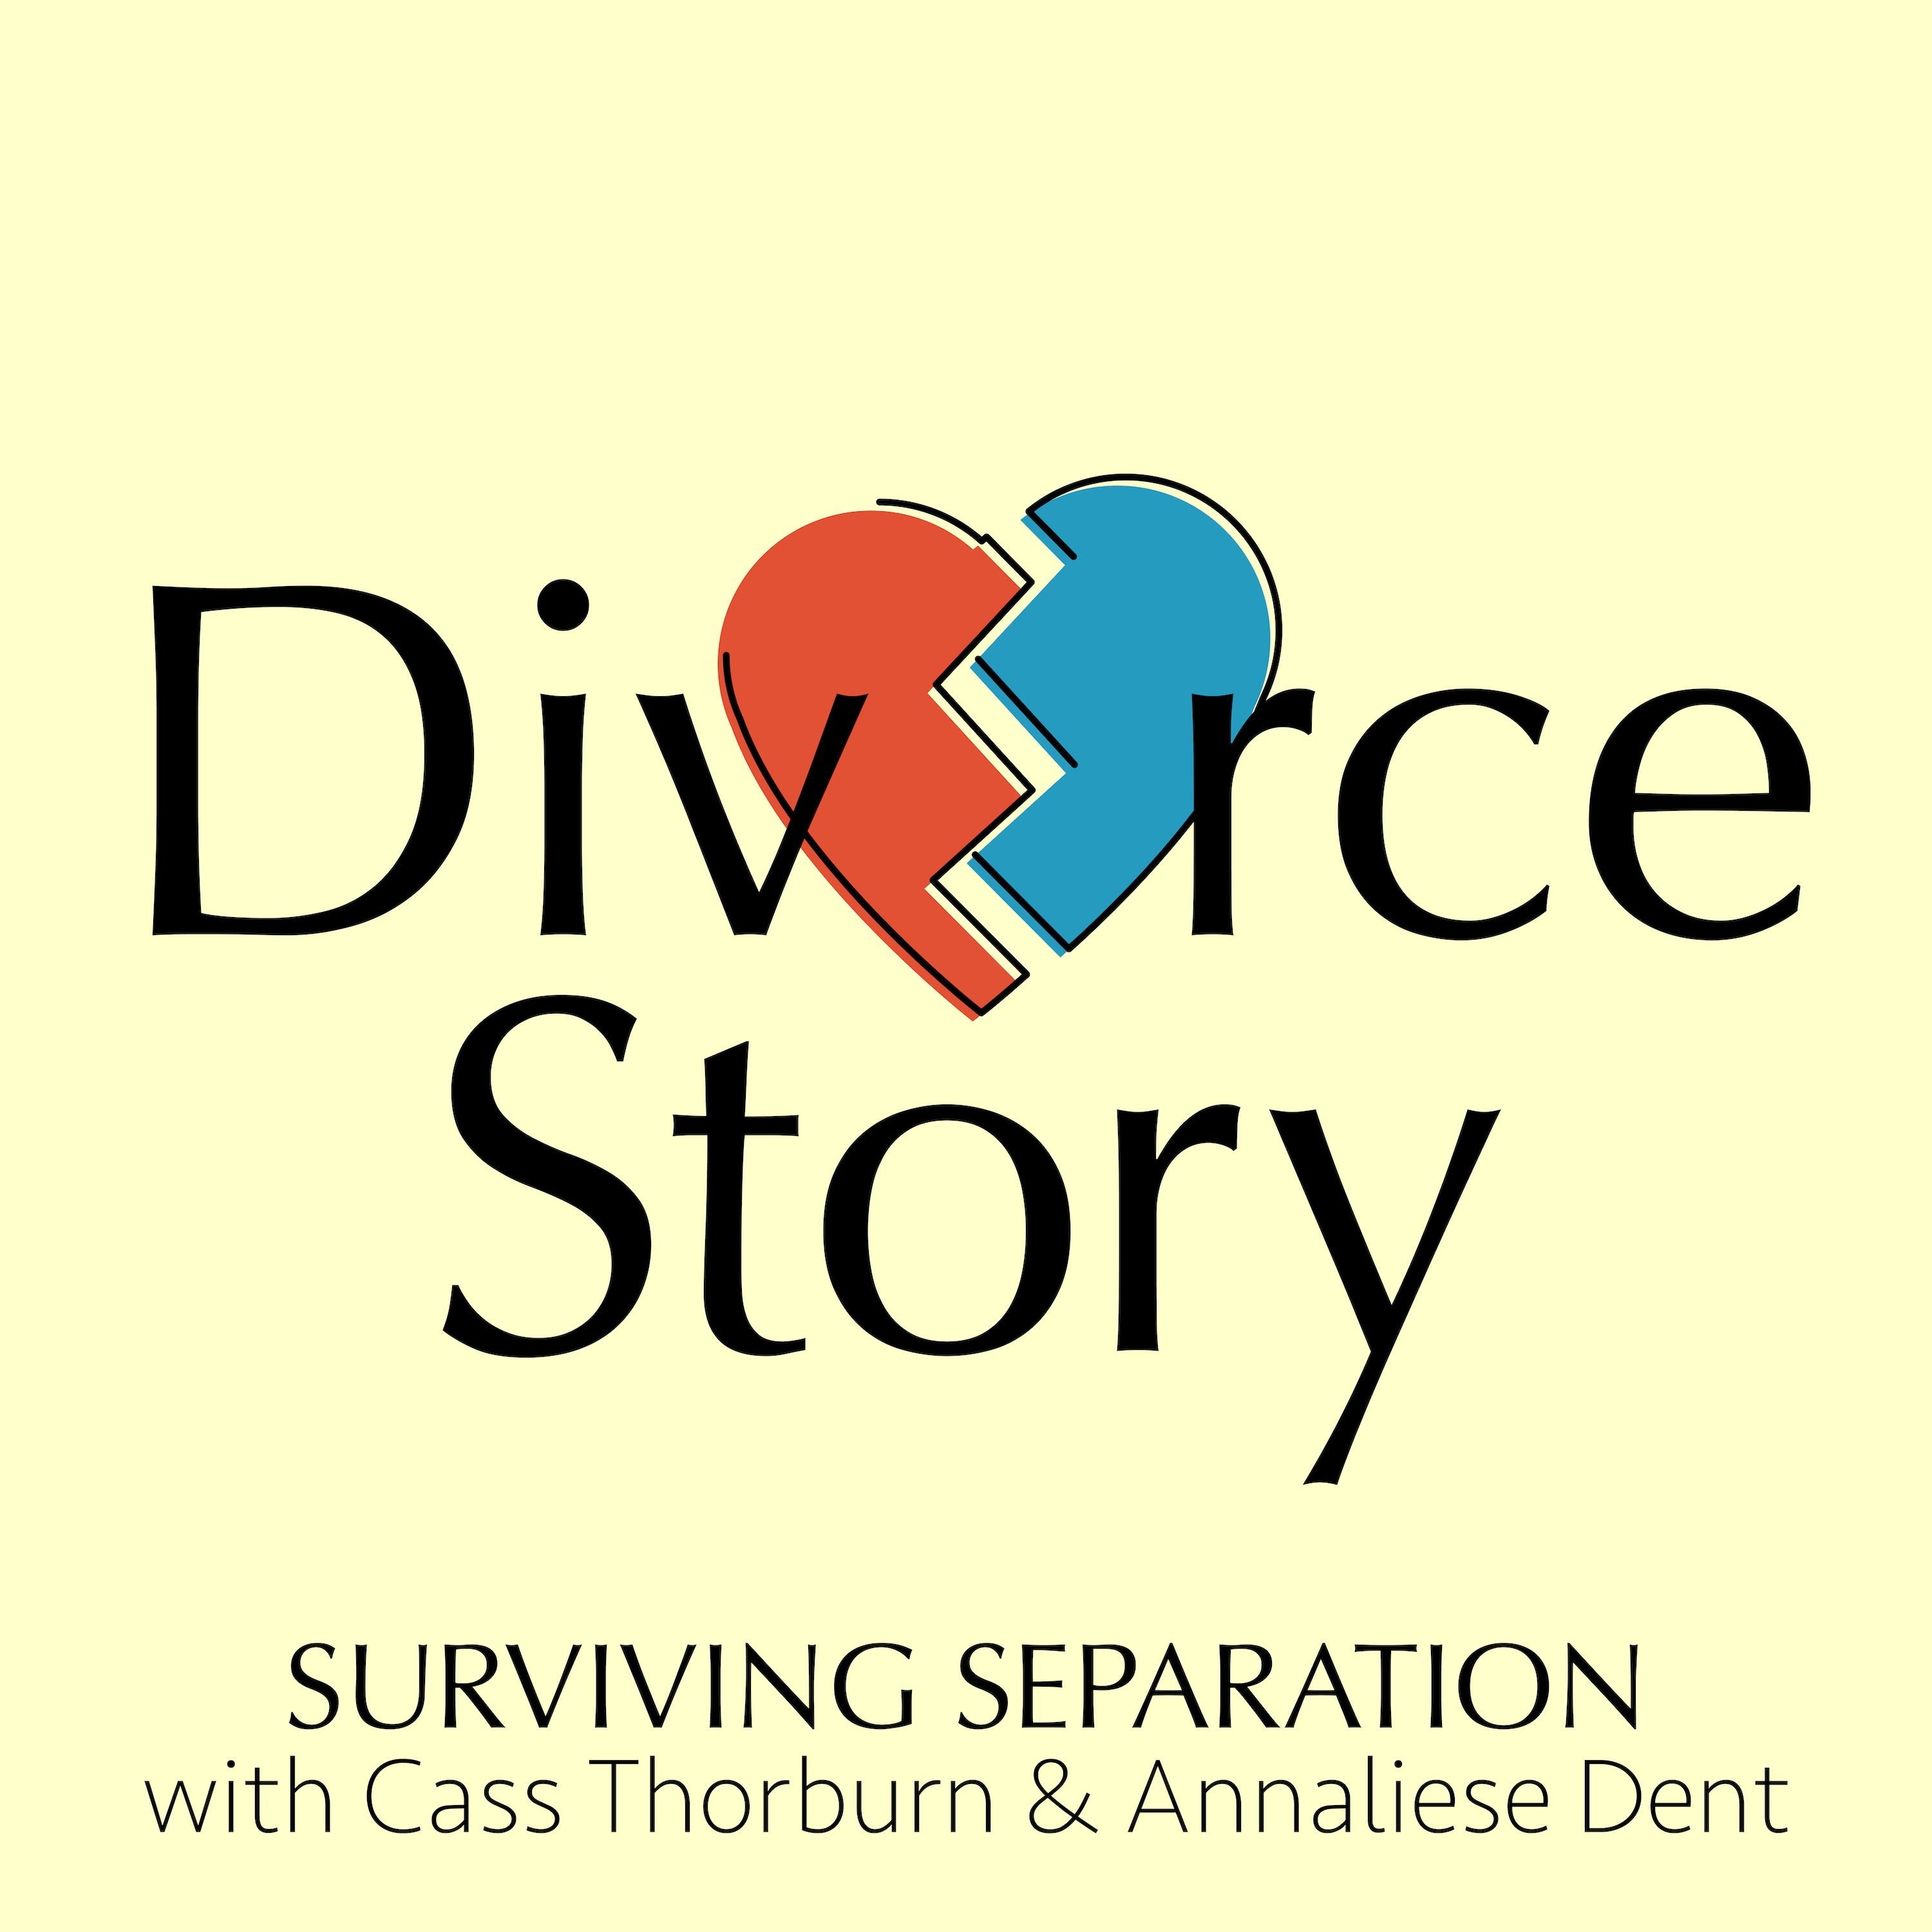 Divorce Story - Relaunching your career